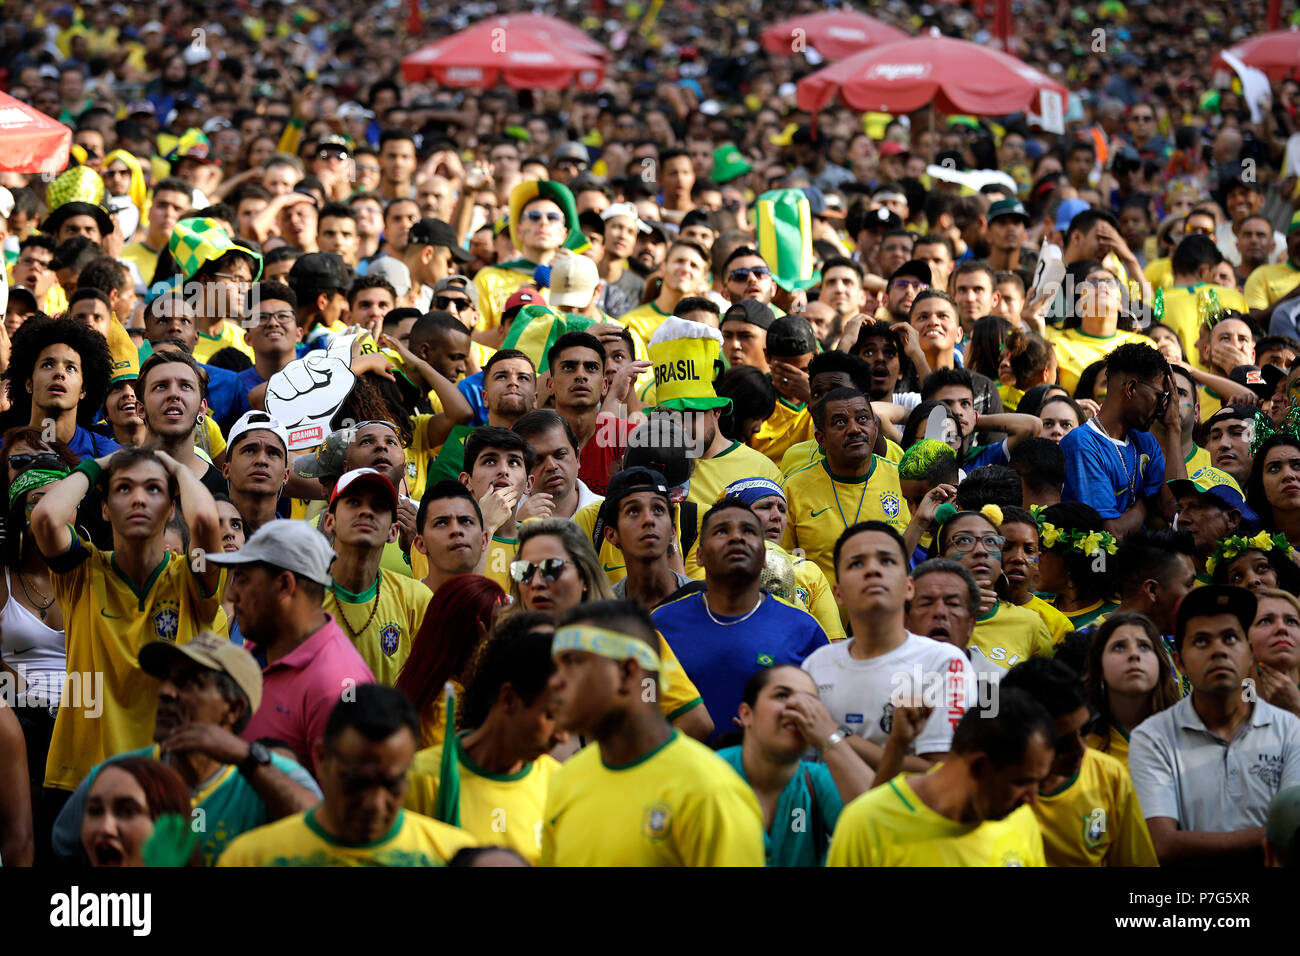 Sao Paulo, Brazil. 06th July, 2018. Brazilian fans react during the public viewing of the FIFA 2018 World Cup quarter final match between Brazil and Belgium in Sao Paulo, Brazil, 06 July 2018. Credit: Marcelo Chello/EFE/Alamy Live News Stock Photo